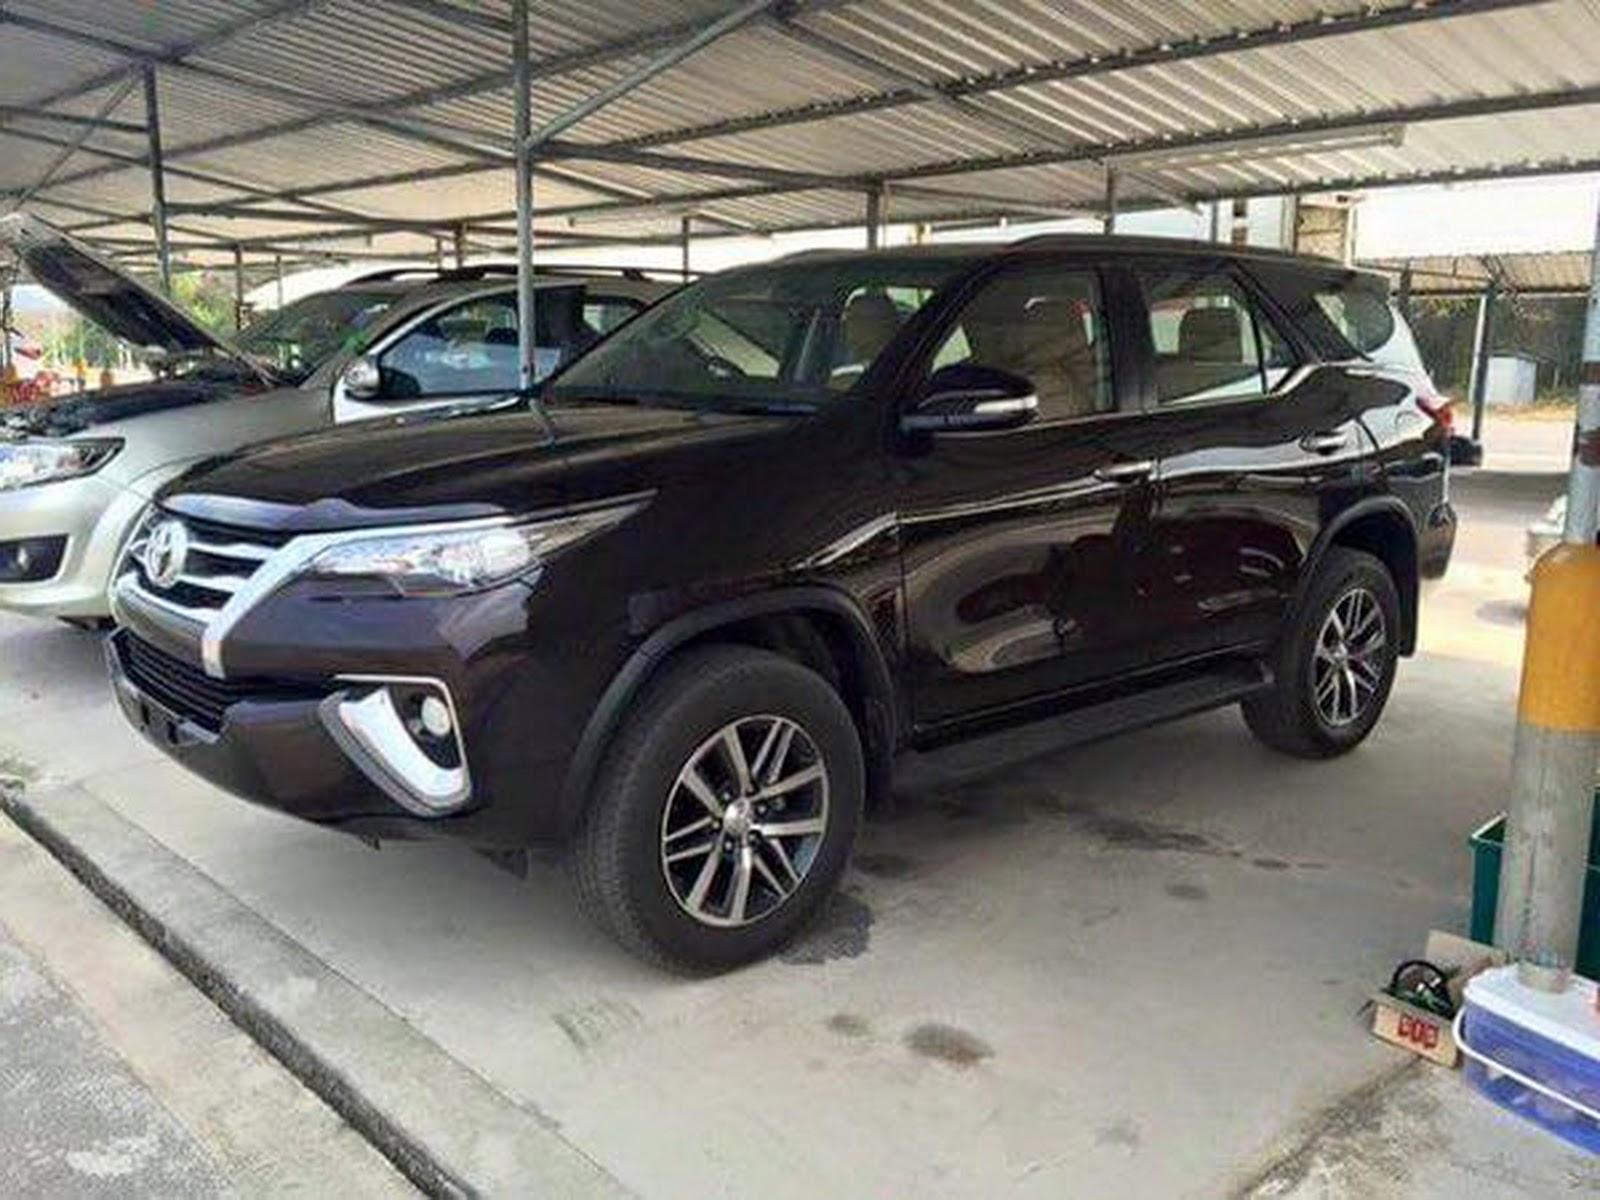 New 2016 Toyota Fortuner SUV - This Is It!